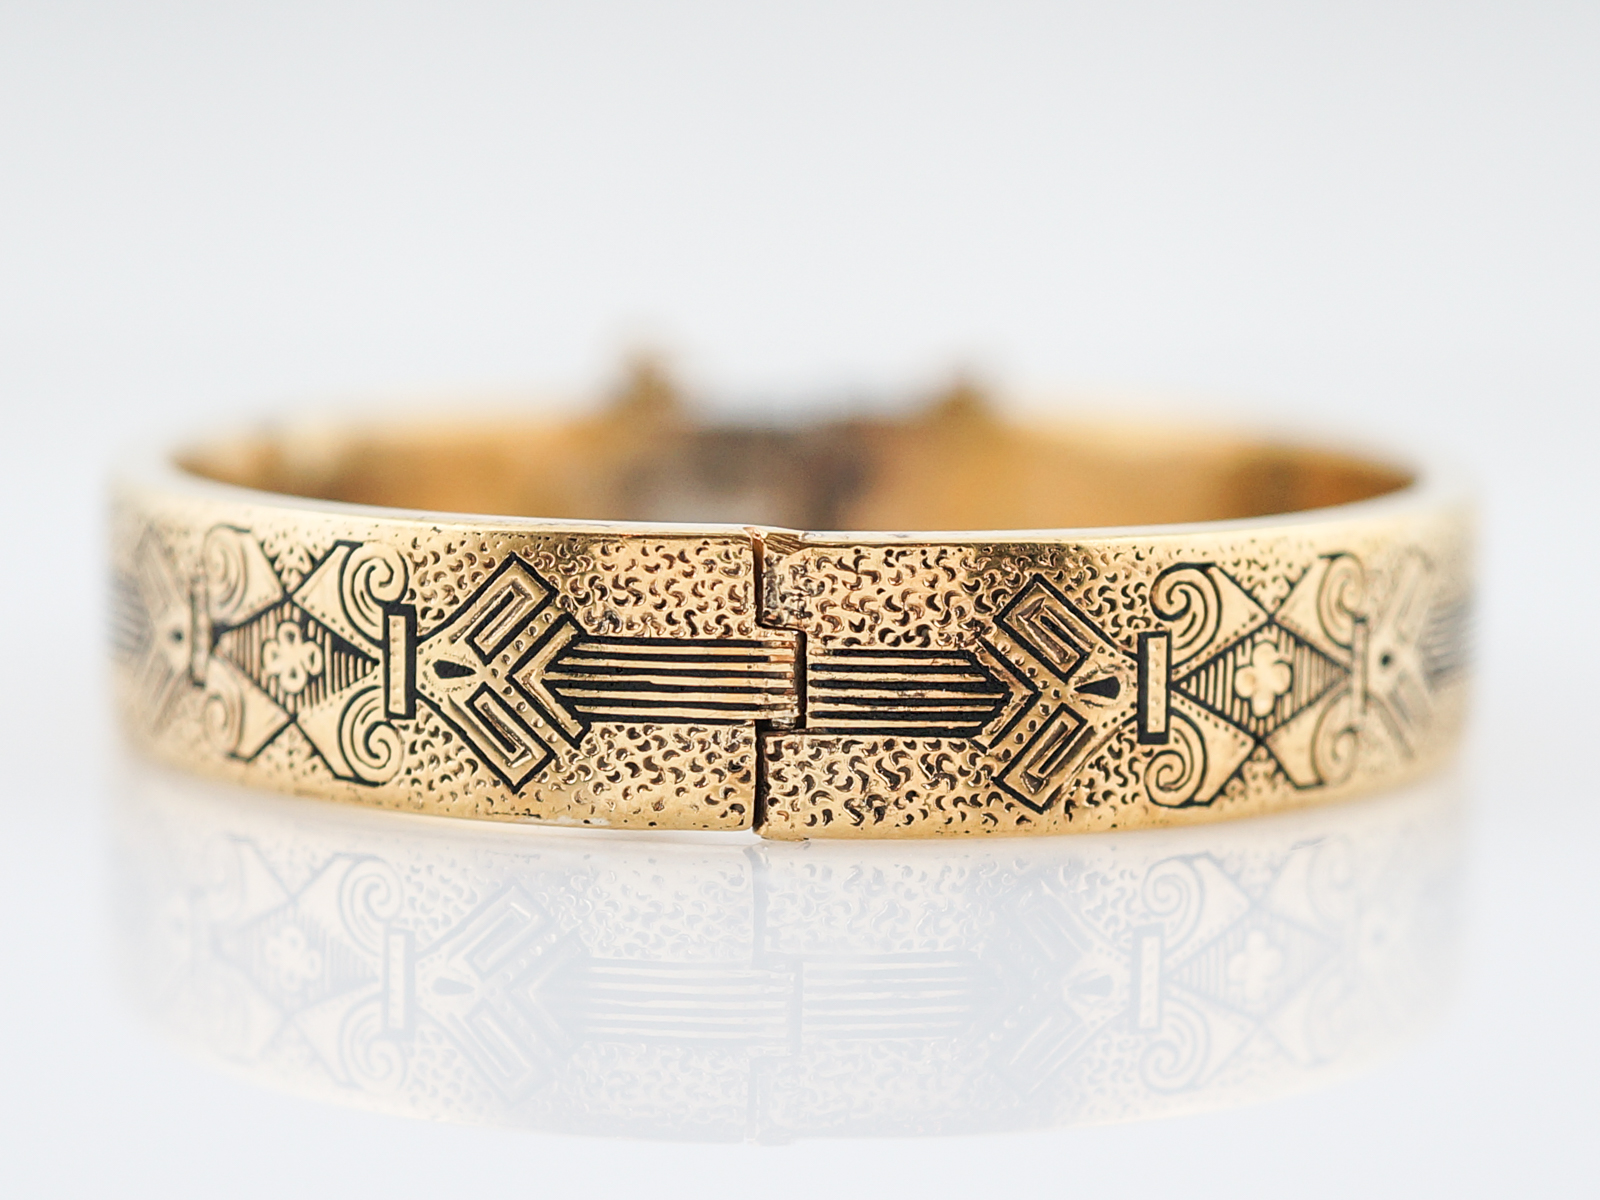 bangle node bangles solid bracelets karat bracelet greek key gold style antique circa classical